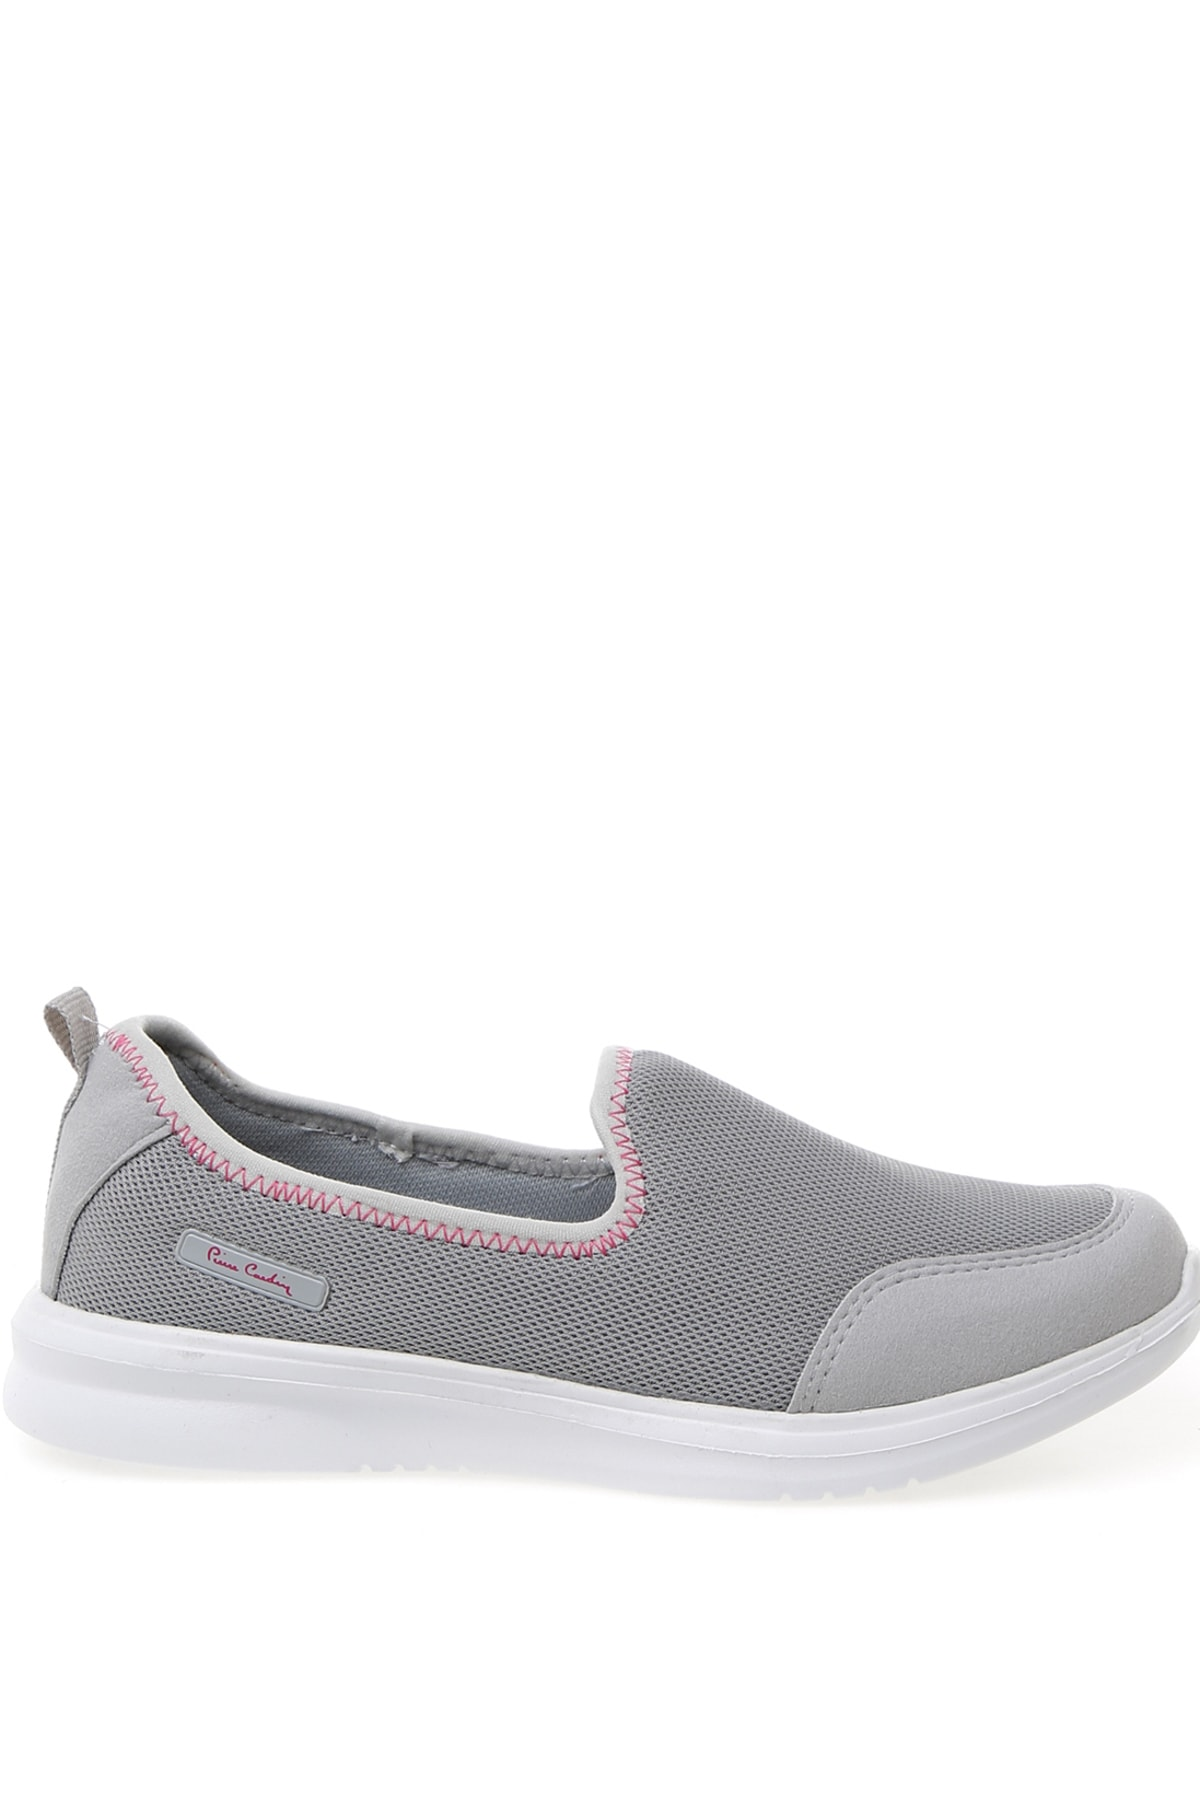 Pierre Cardin Sneakers 1